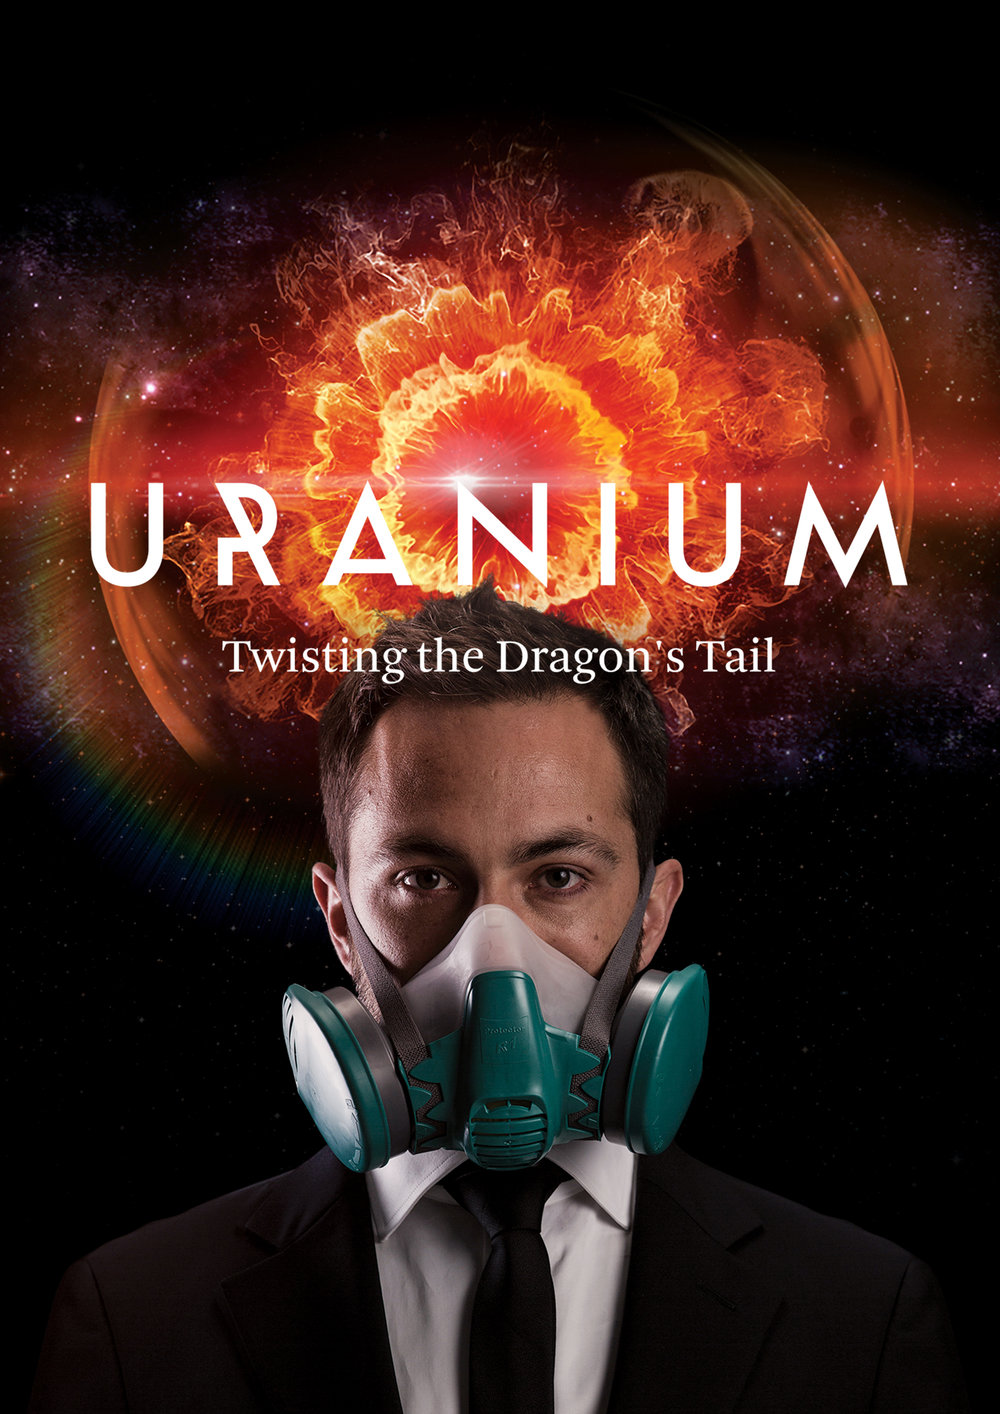 Uranium - Twisting the Dragon's Tail